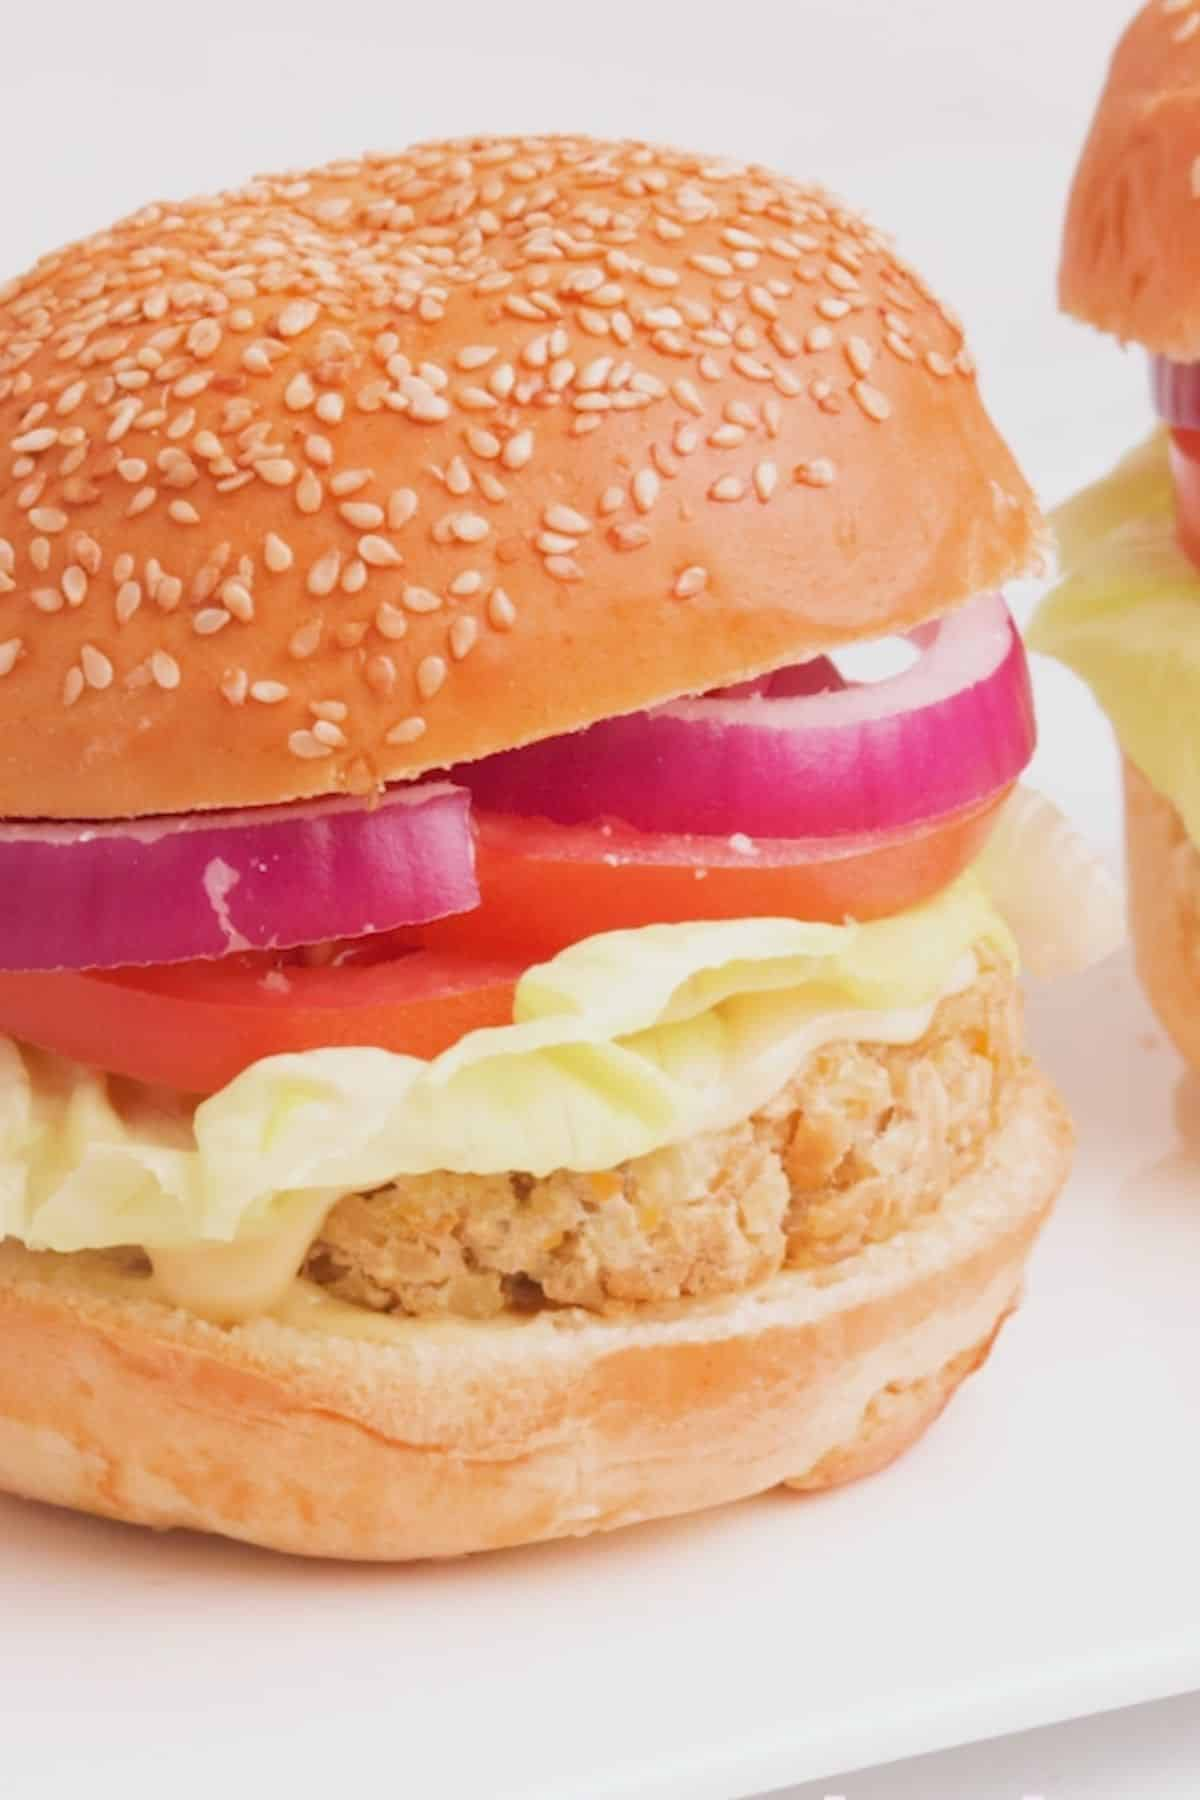 Vegan chicken burger in bun with onion, tomato, lettuce and mayo.